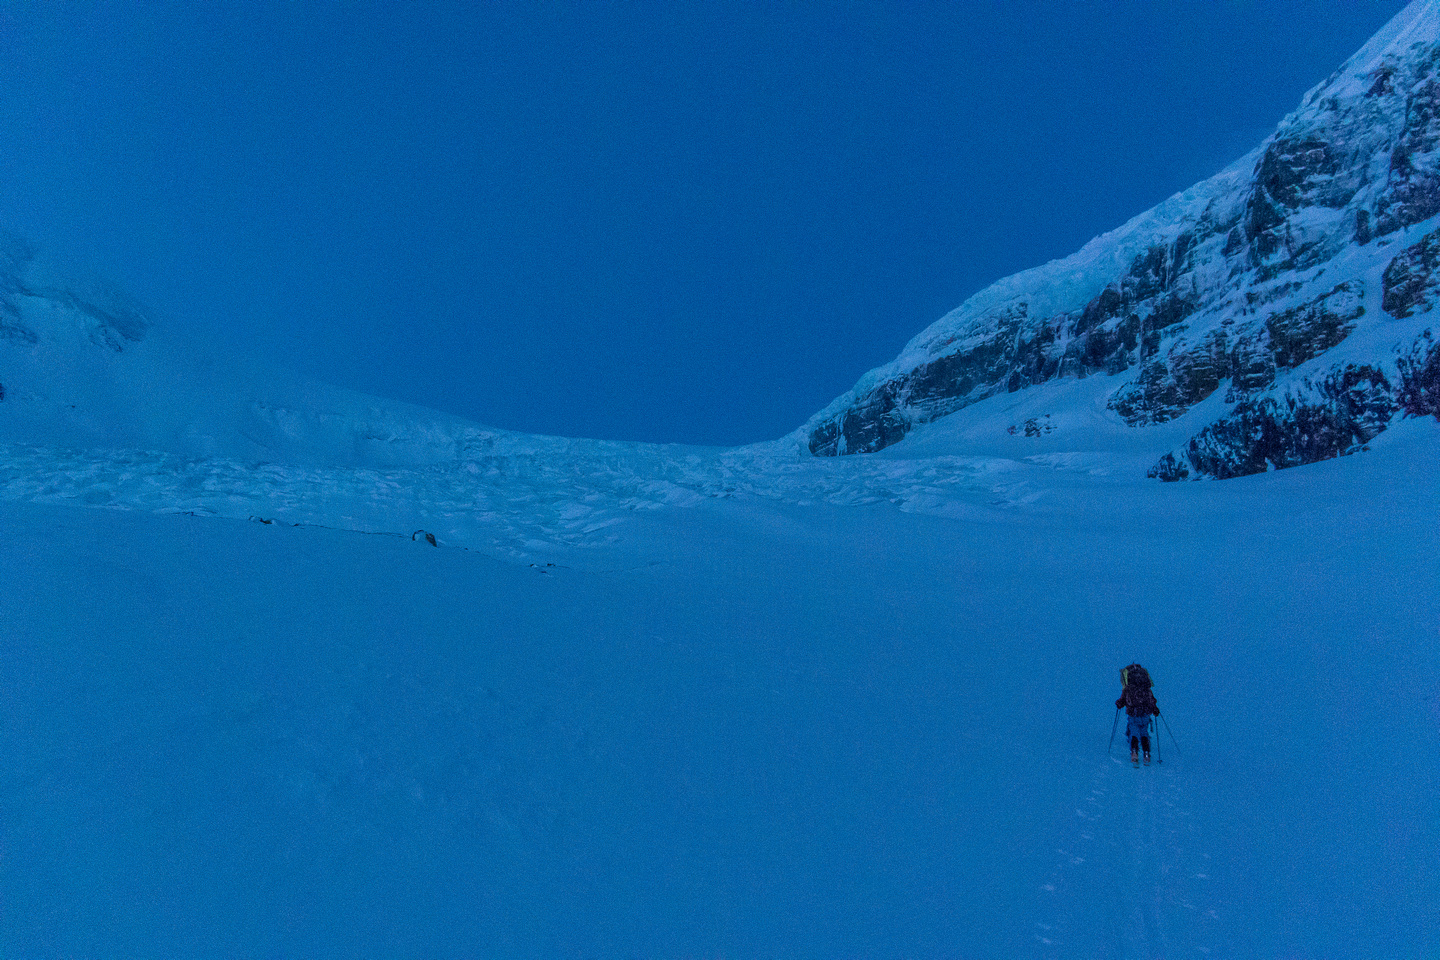 Approaching the lower icefall on the Athabasca Glacier approach to the Columbia Icefield in early morning light.